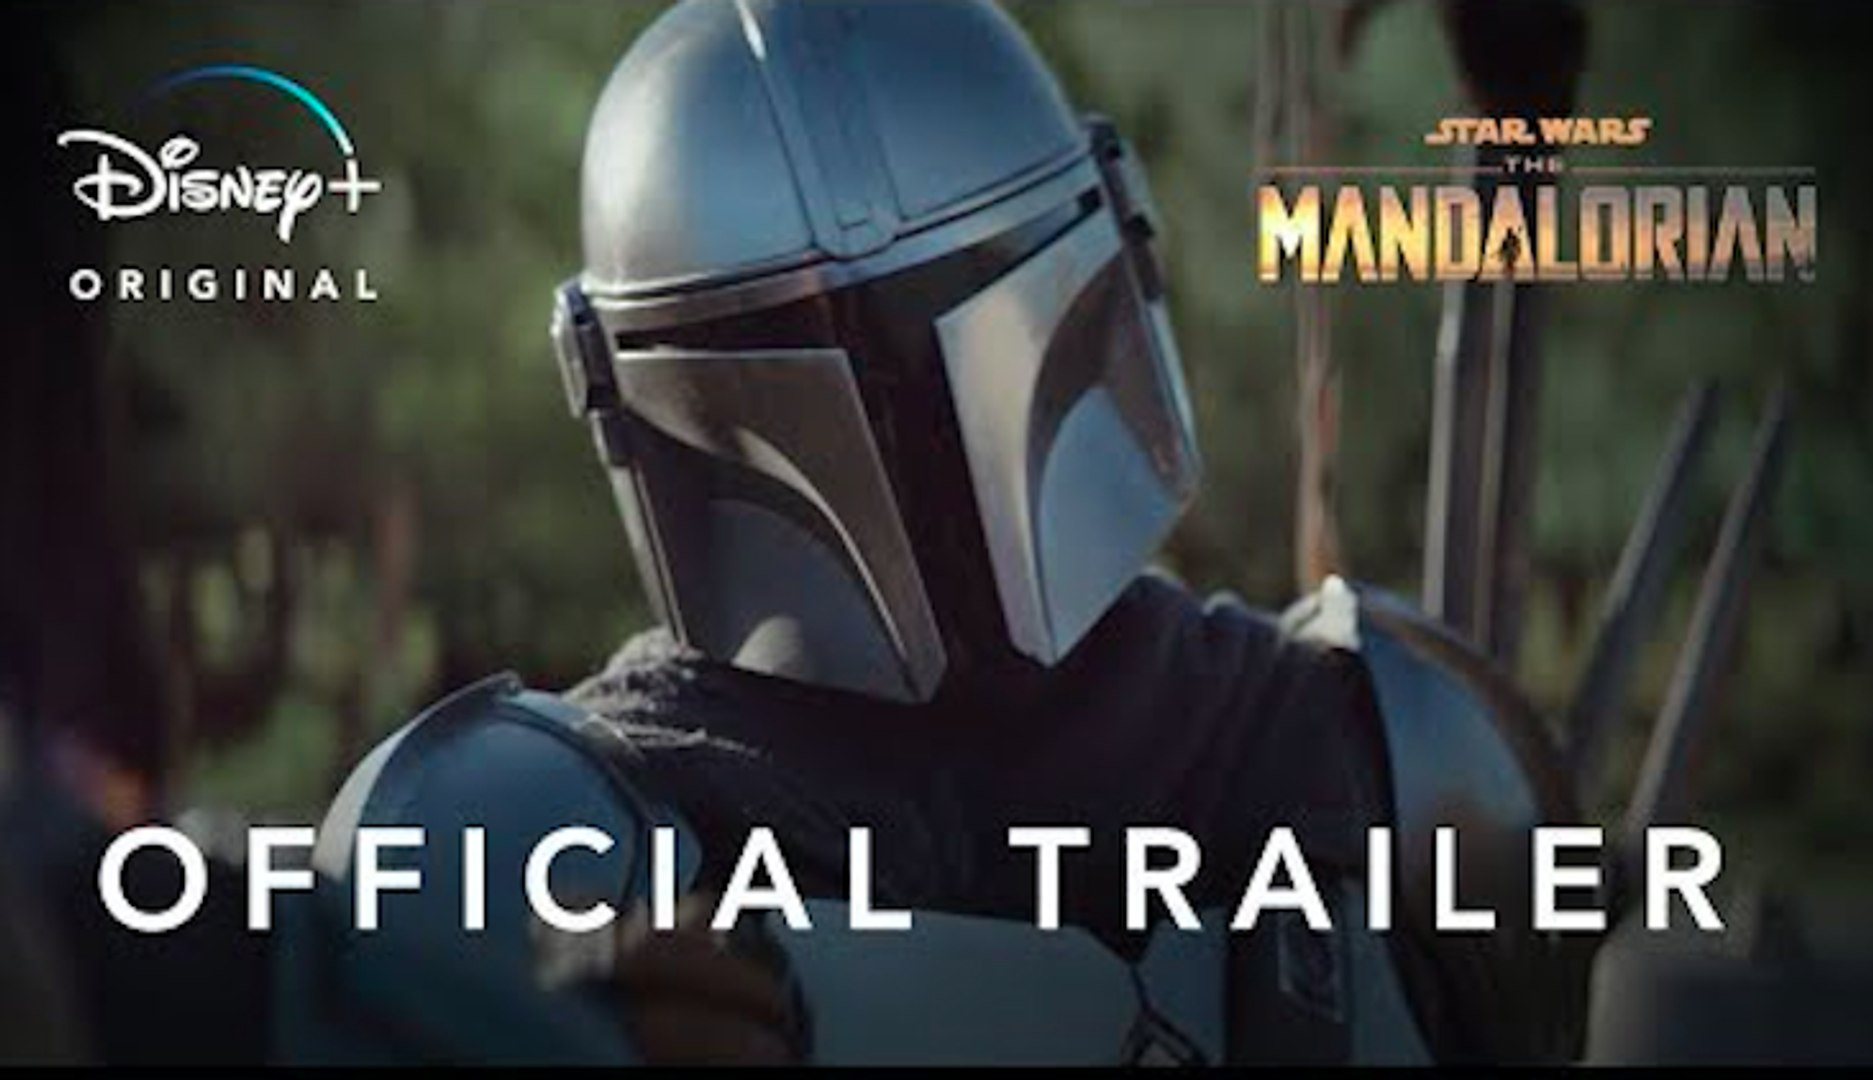 The Mandalorian Official Trailer 2 Star Wars Season 1 Disney Video Dailymotion